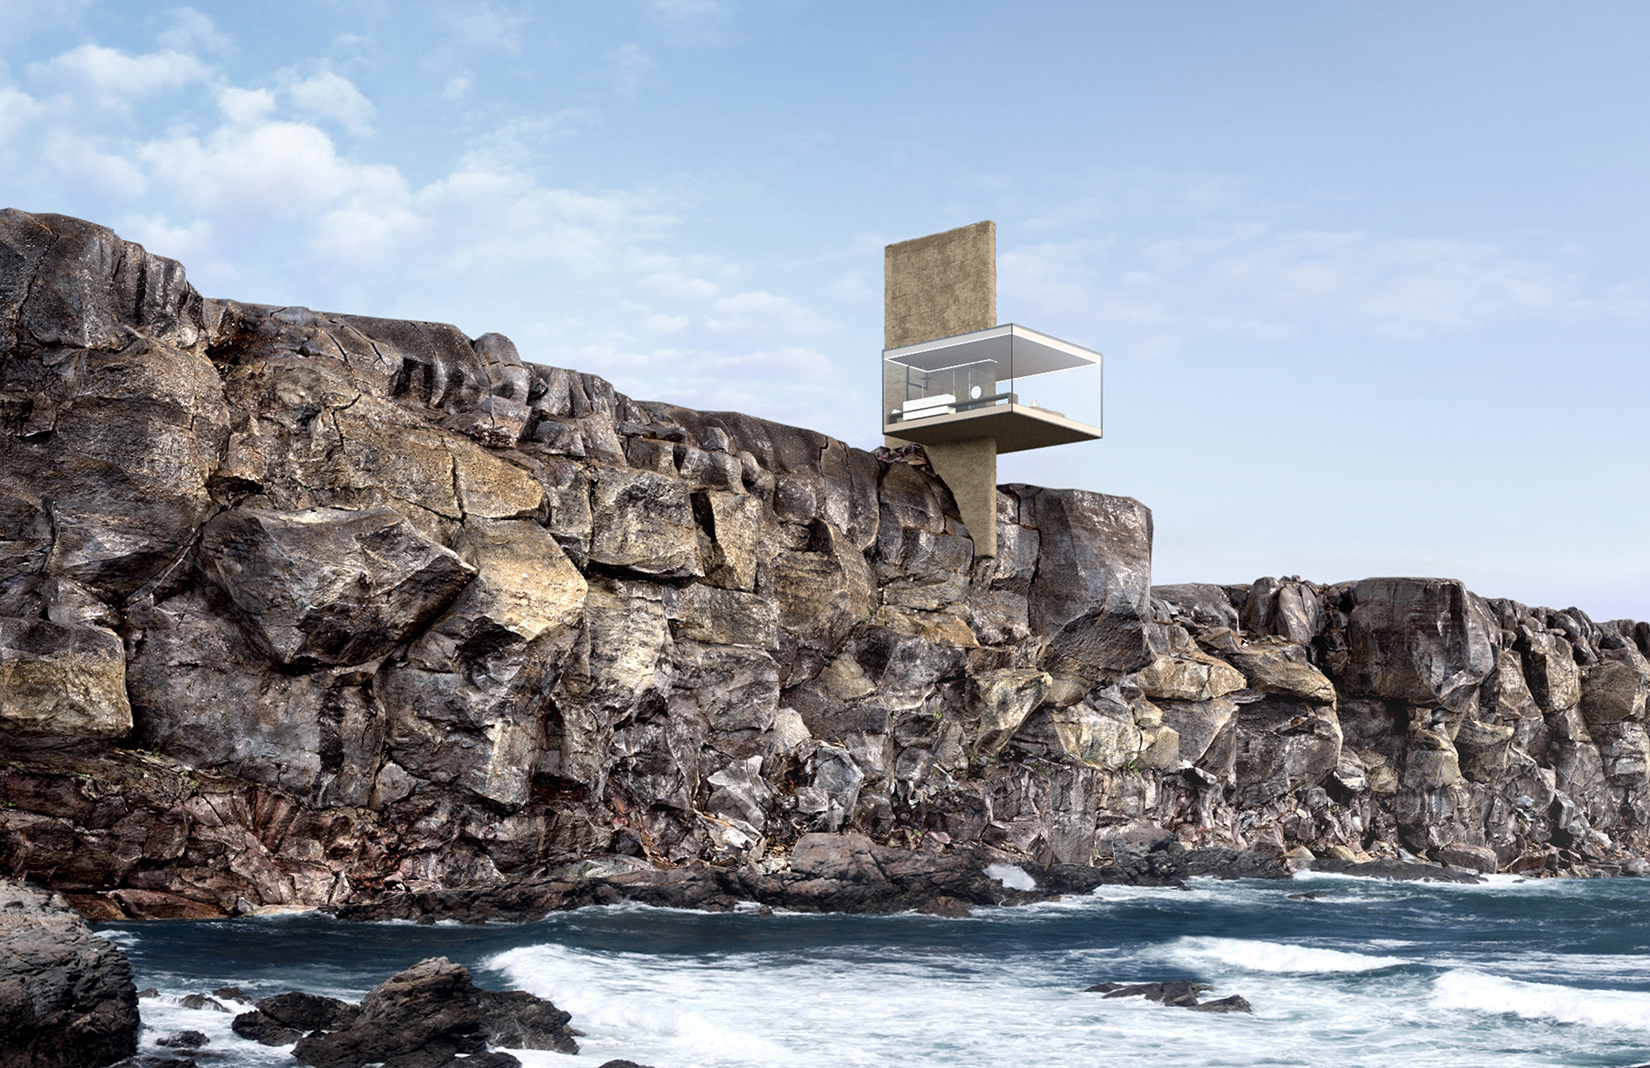 The Air Cabin concept sees a glass box mounted on a concrete pillar to raise it above the clifftop landscape